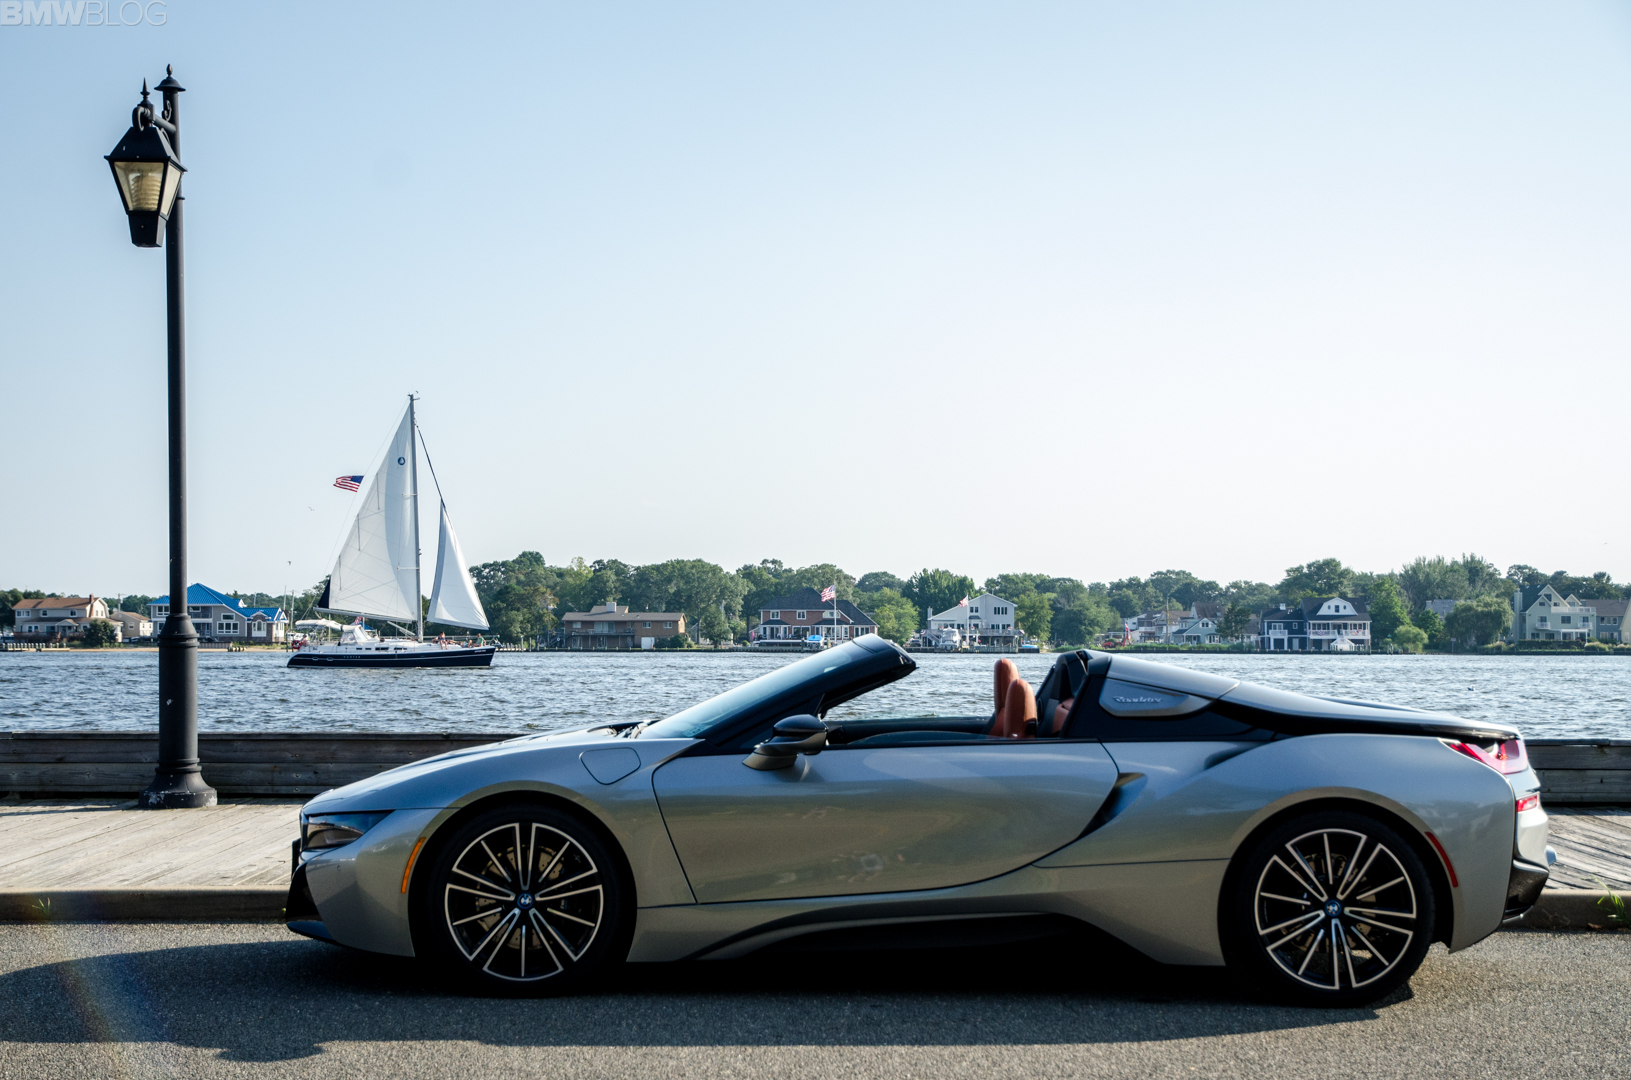 BMw i8 Roadster 34 of 35